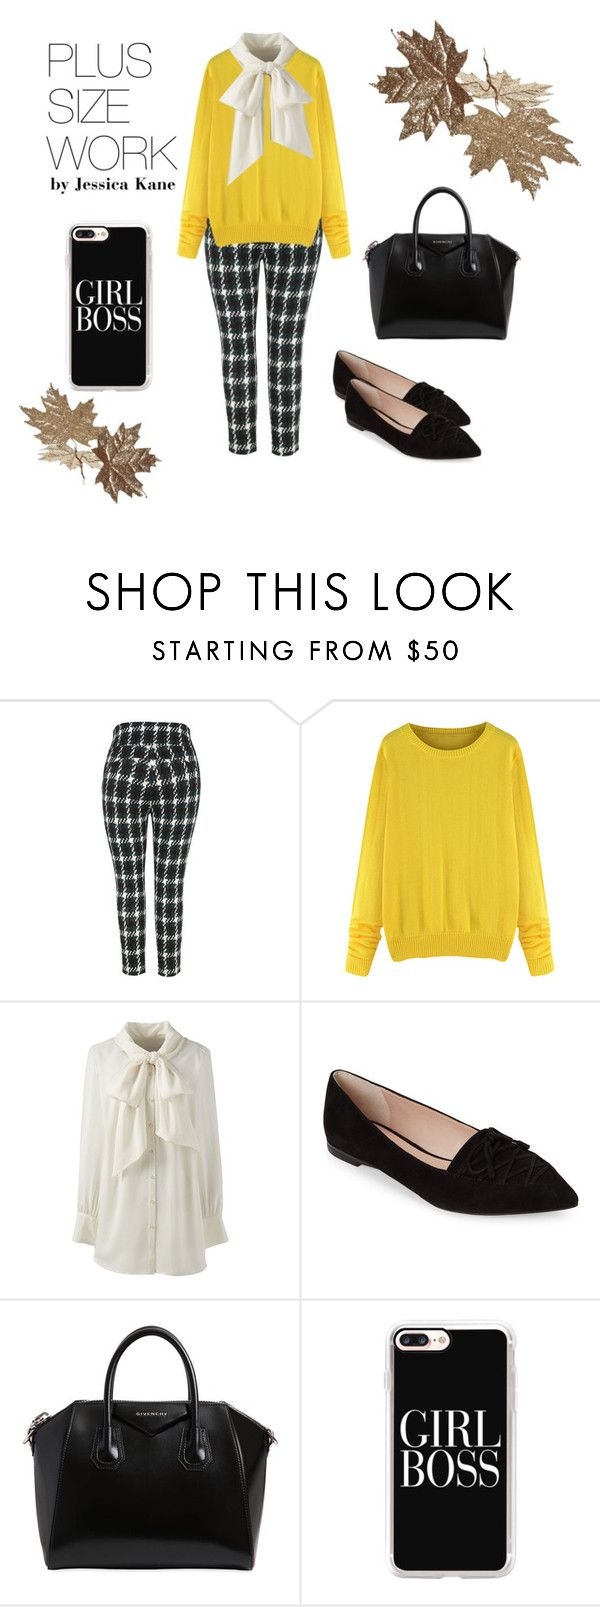 Plus Size Workwear - Girl Boss by jessicakanestyle on Polyvore featuring Lands' End, Melissa McCarthy Seven7, French Connection, Givenchy, Casetify, WorkWear, plussize, polyvoreeditorial, polyvorecontest and plus size clothing